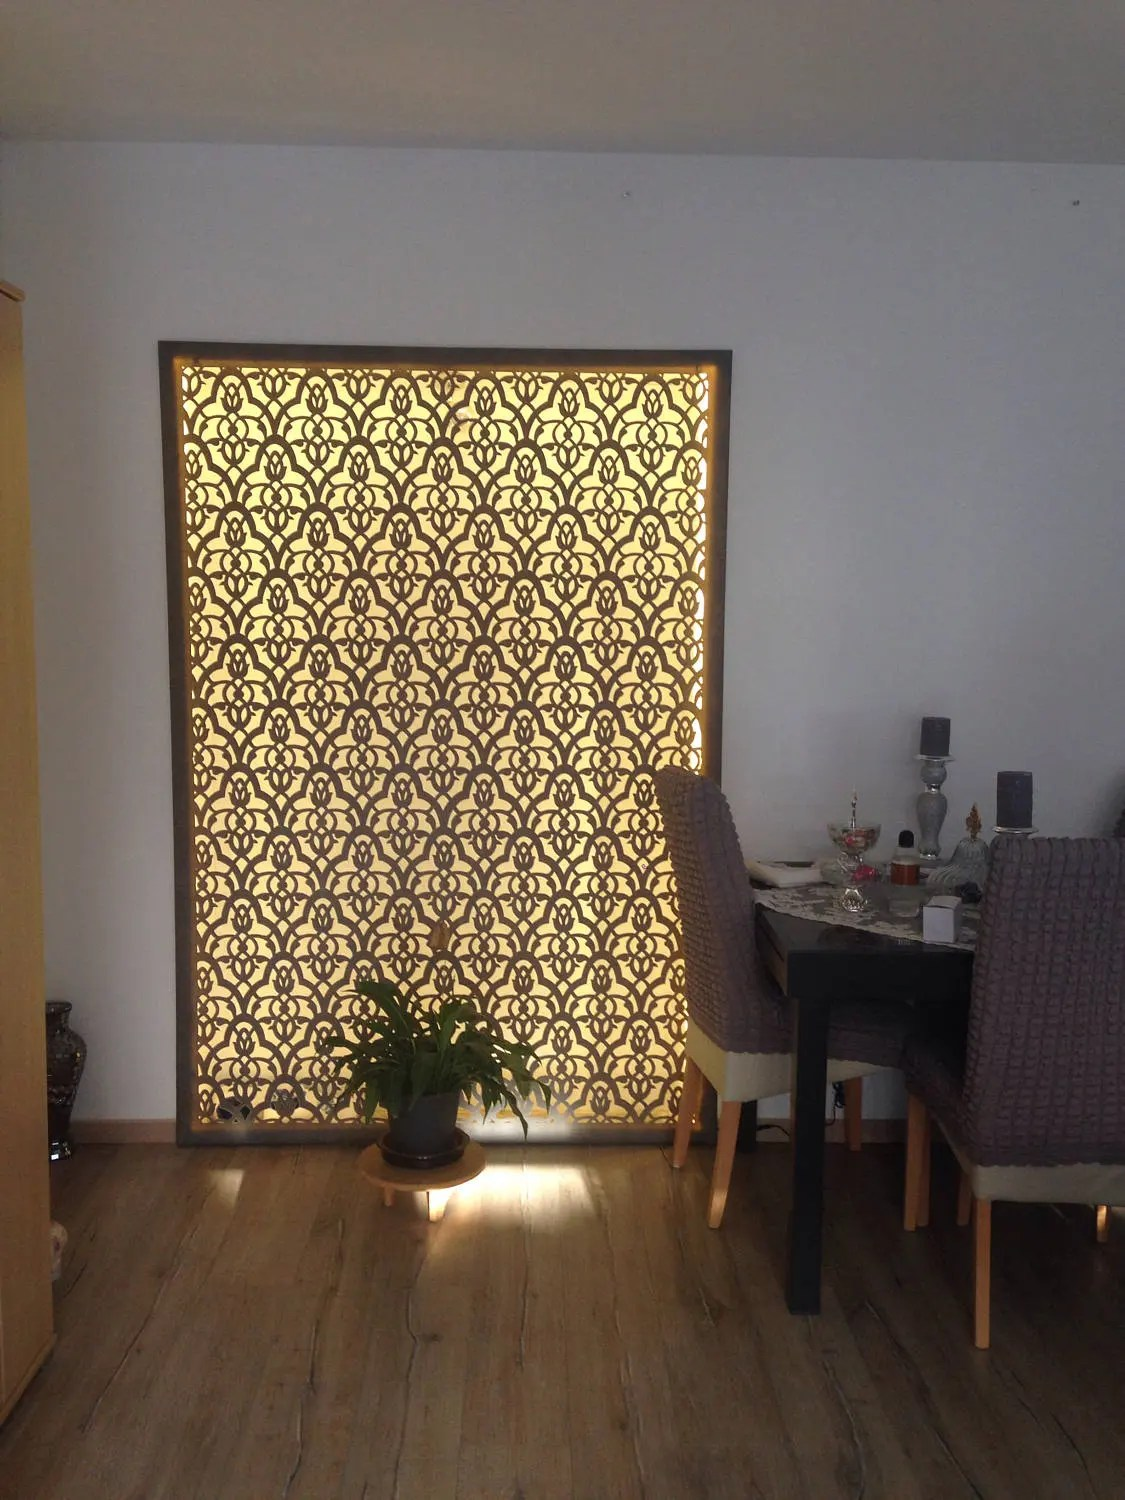 Islam Wanddeko Mural Pano Oriental With Led Handcrafted Wall Decoration Islamic 2 M X 1 30 M Only Pick Up Tablo